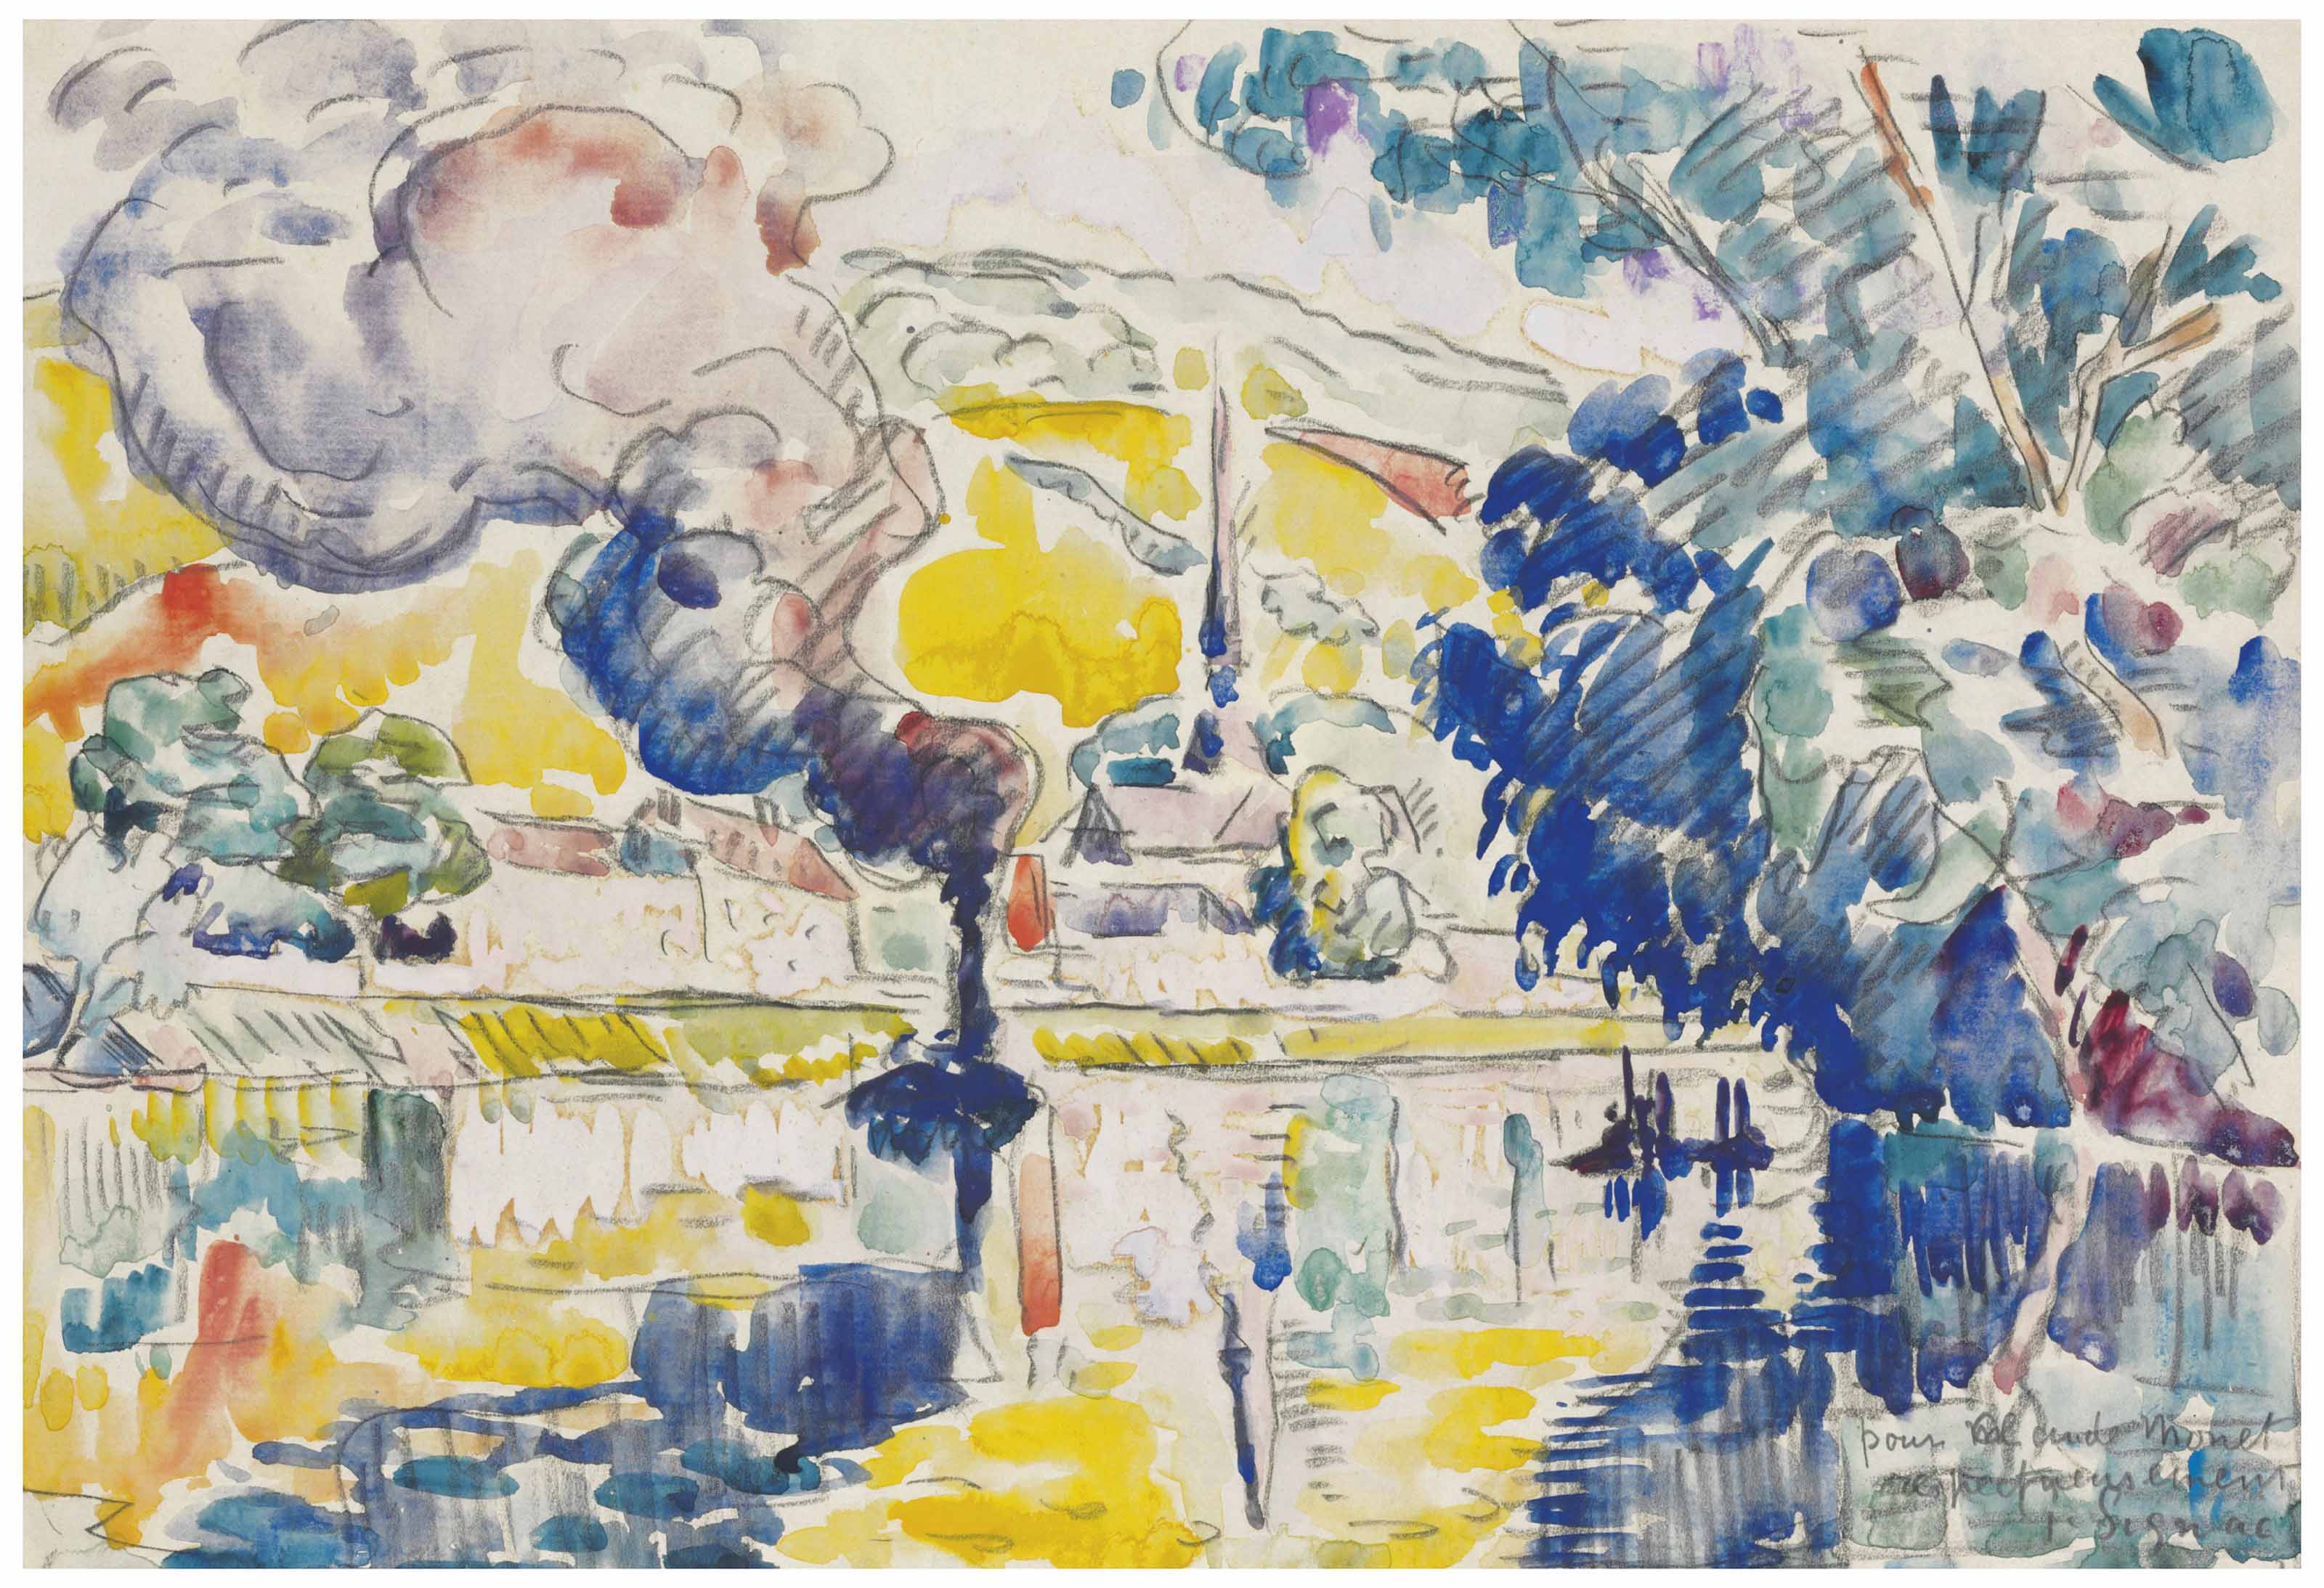 3200x2187 Paul Signac (1863 1935) Les Andelys 20th Century, Drawings